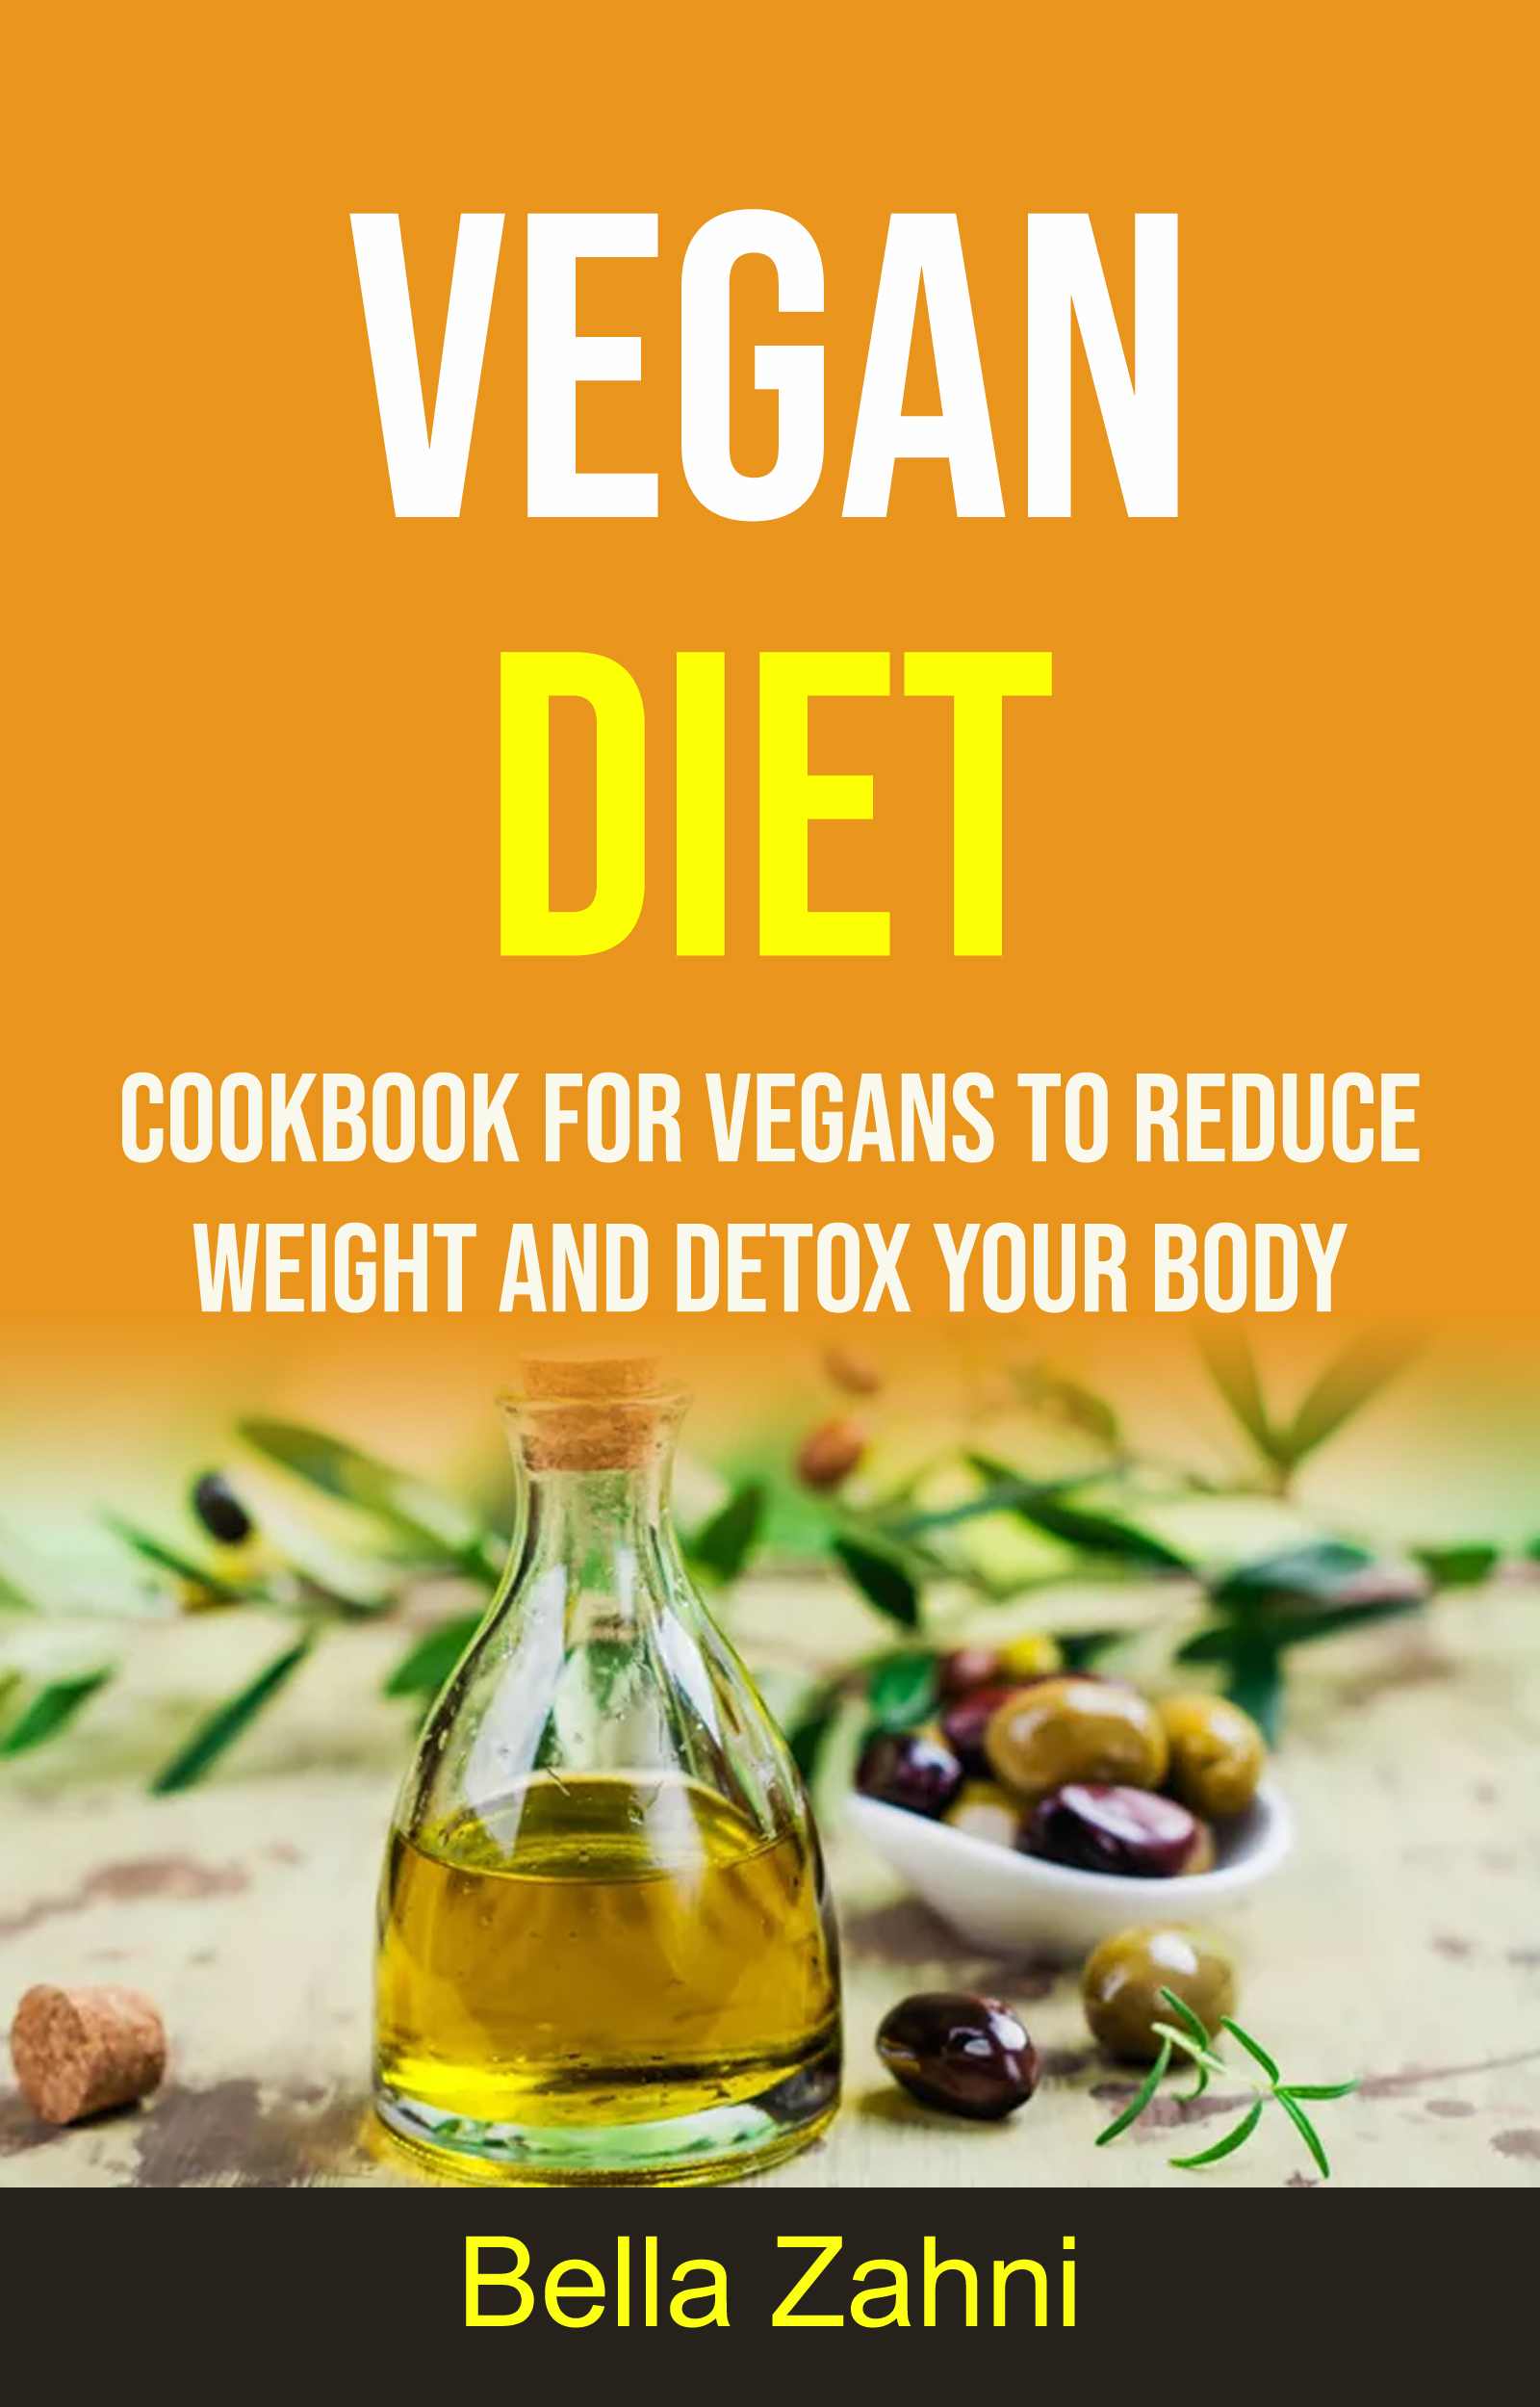 Vegan diet: cookbook for vegans to reduce weight and detox your body